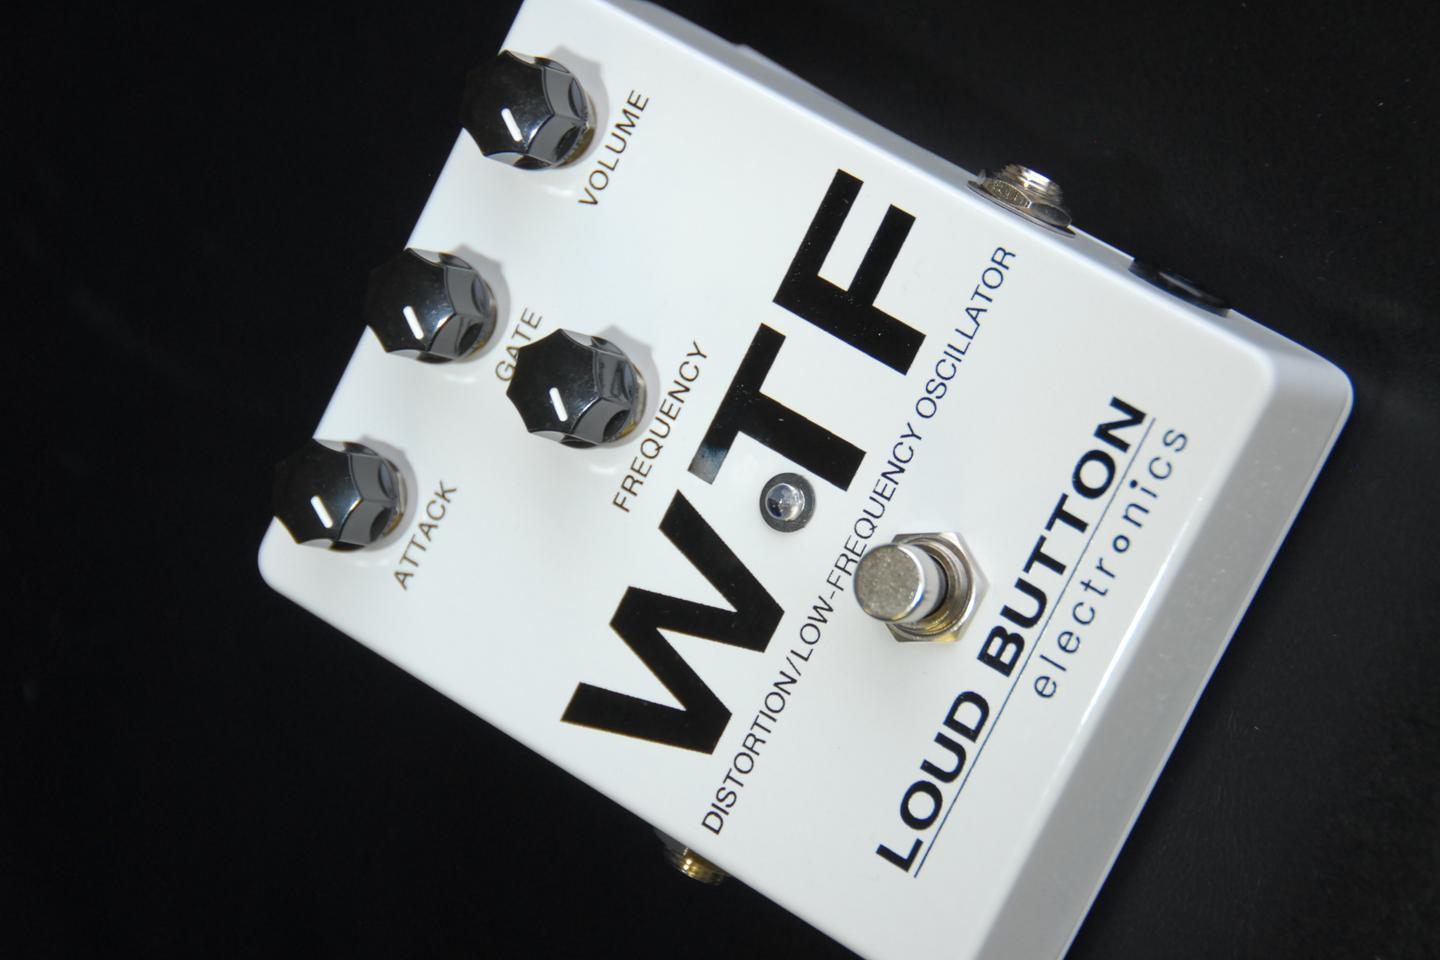 The attack dial to the left modulates the LFO to provide variable envelope sweep and octave-down effects